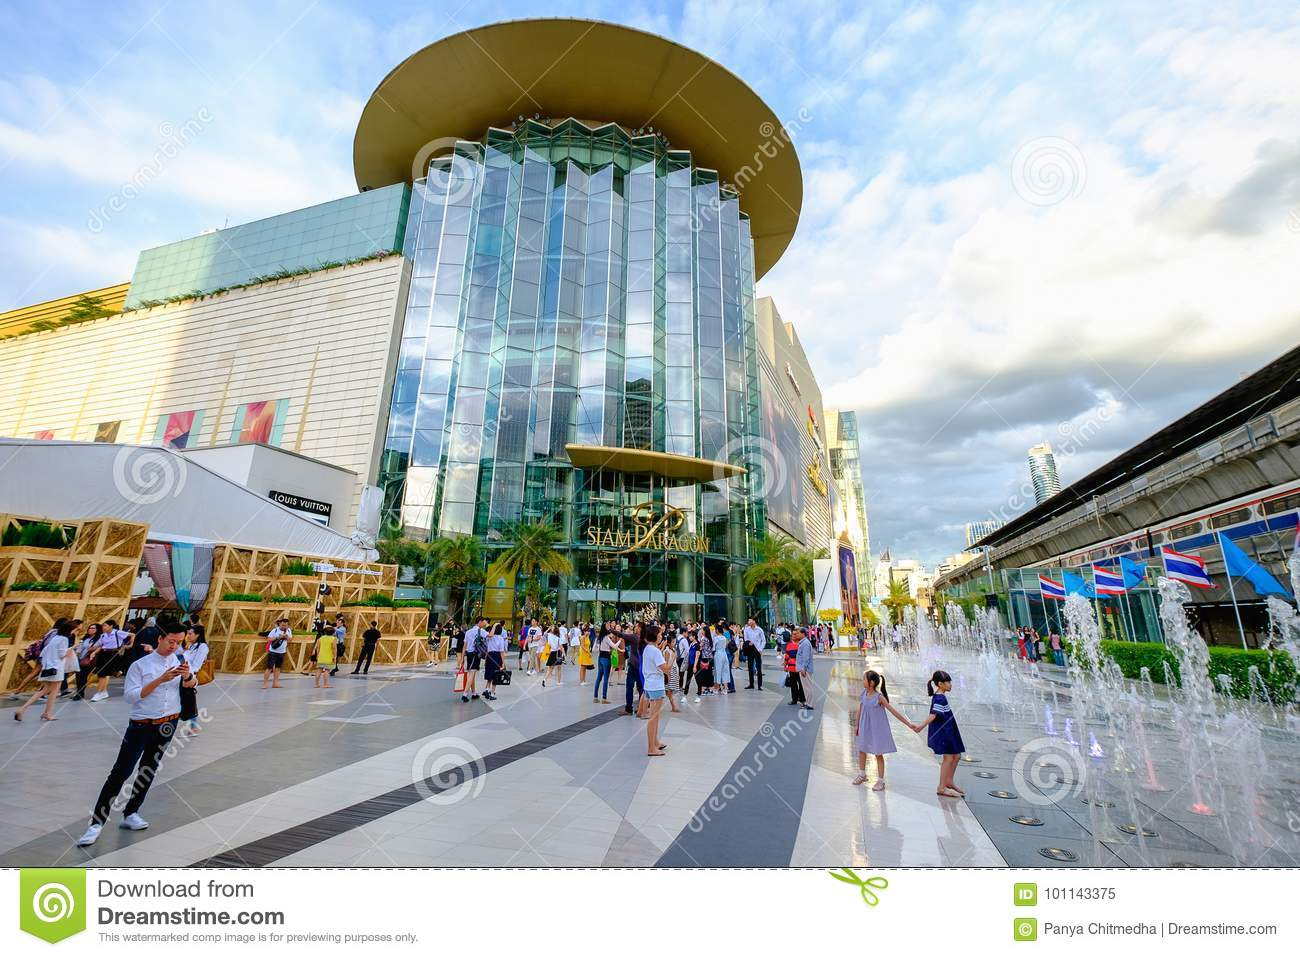 Shoppers visit Siam Paragon mall in Siam Square mall on in Bangkok, Thailand.